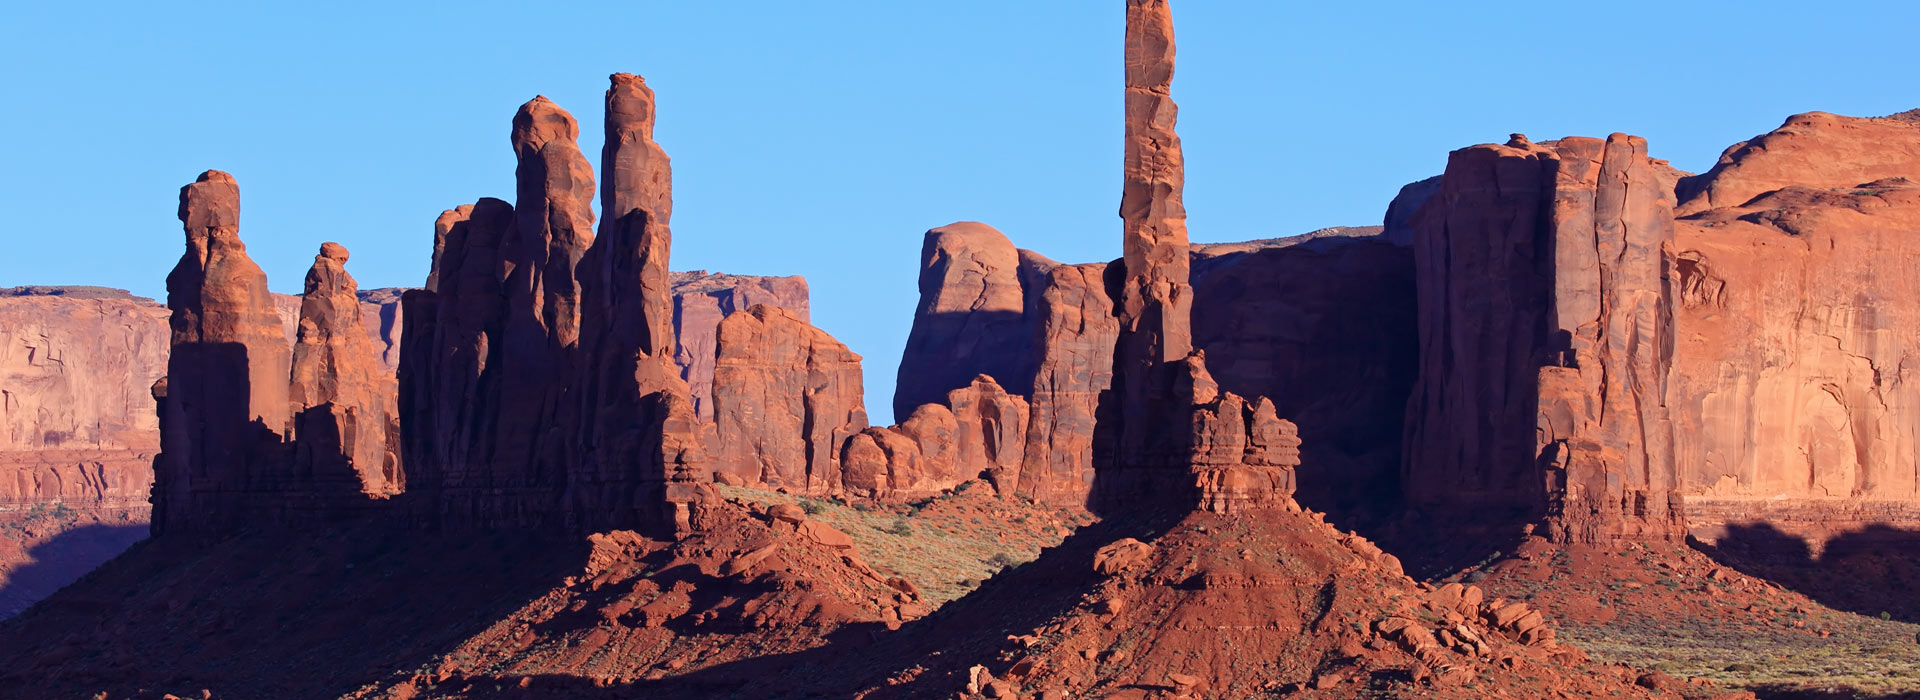 Monument_valley_utah